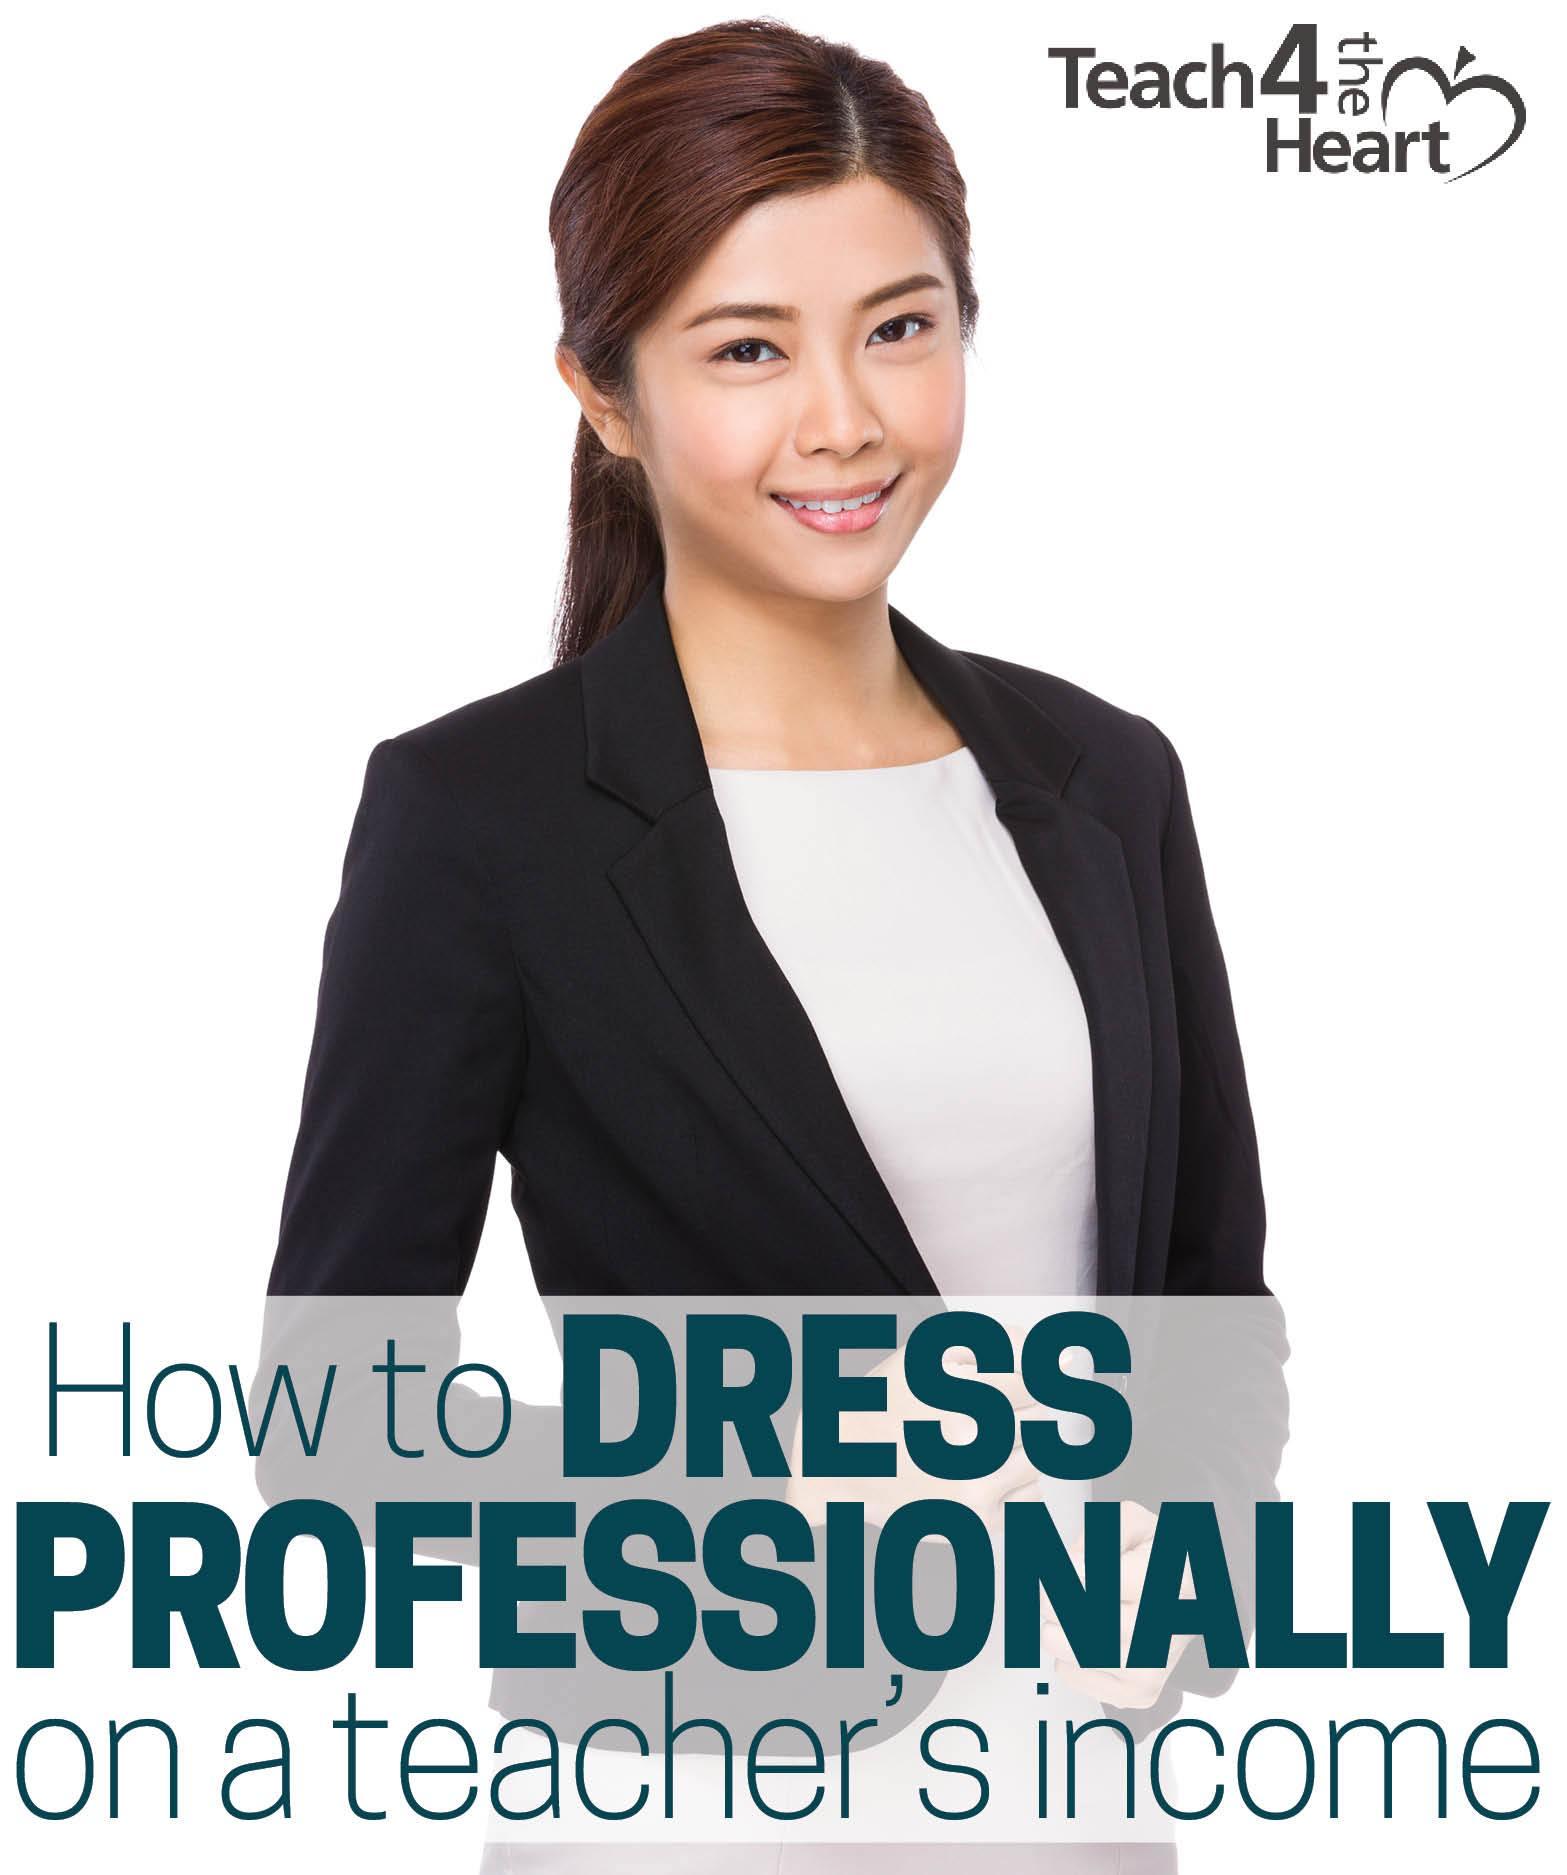 how to dress professionally on a teacher's income or how to dress professionally on a budget